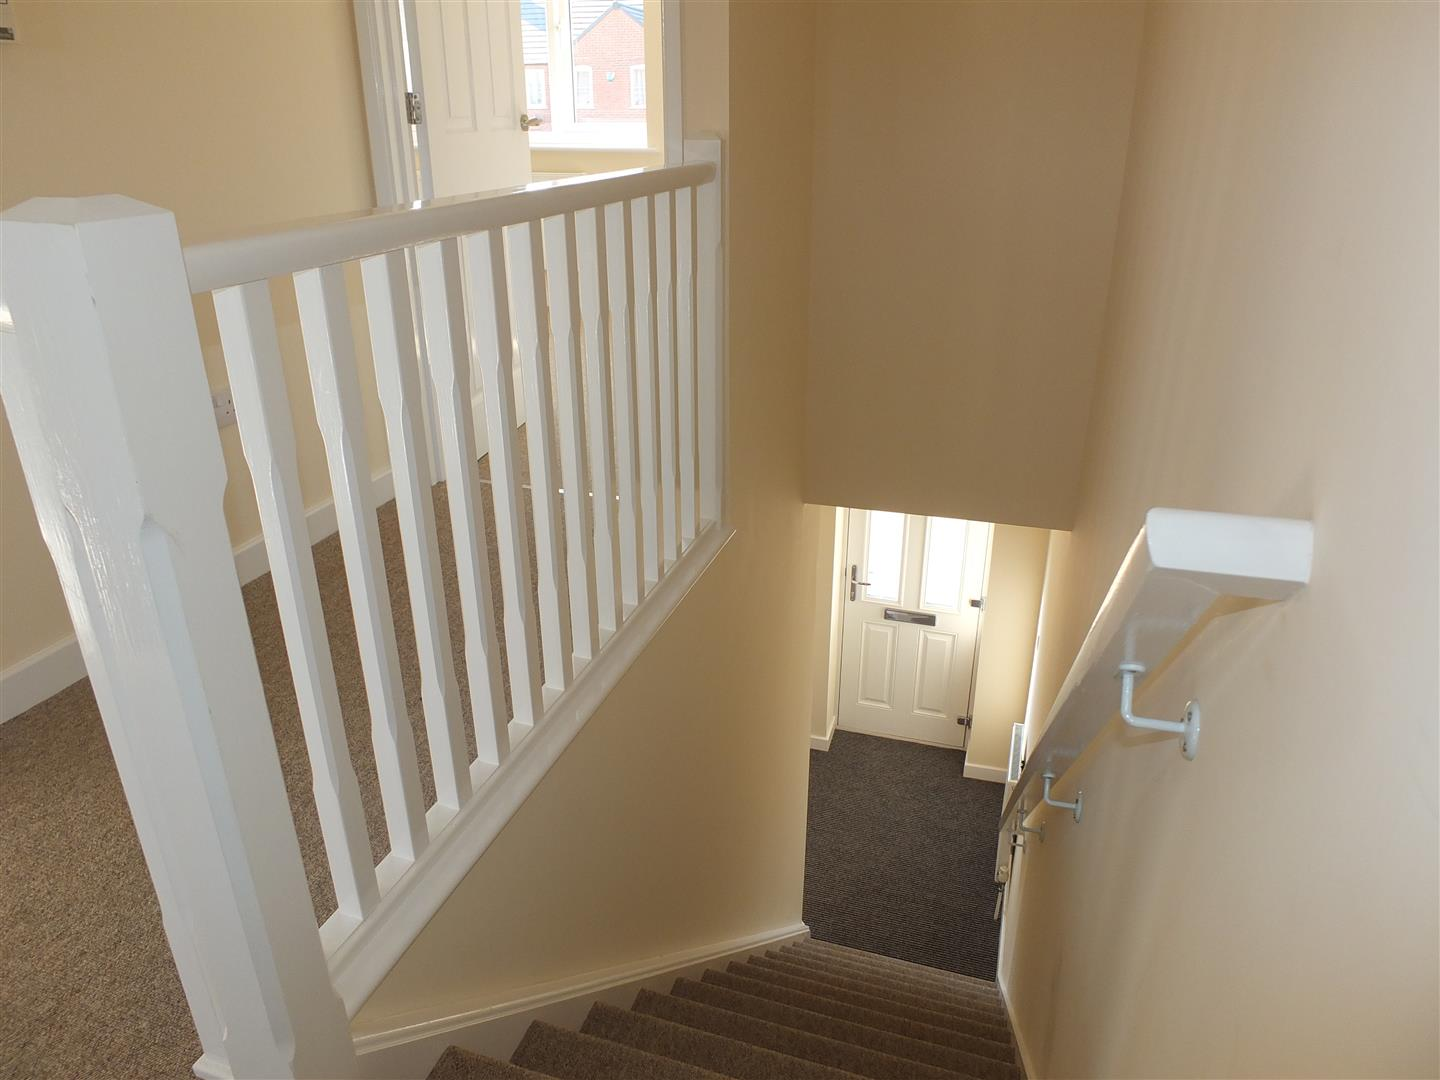 2 bed house to rent in Long Sutton Spalding, PE12 9LE 9